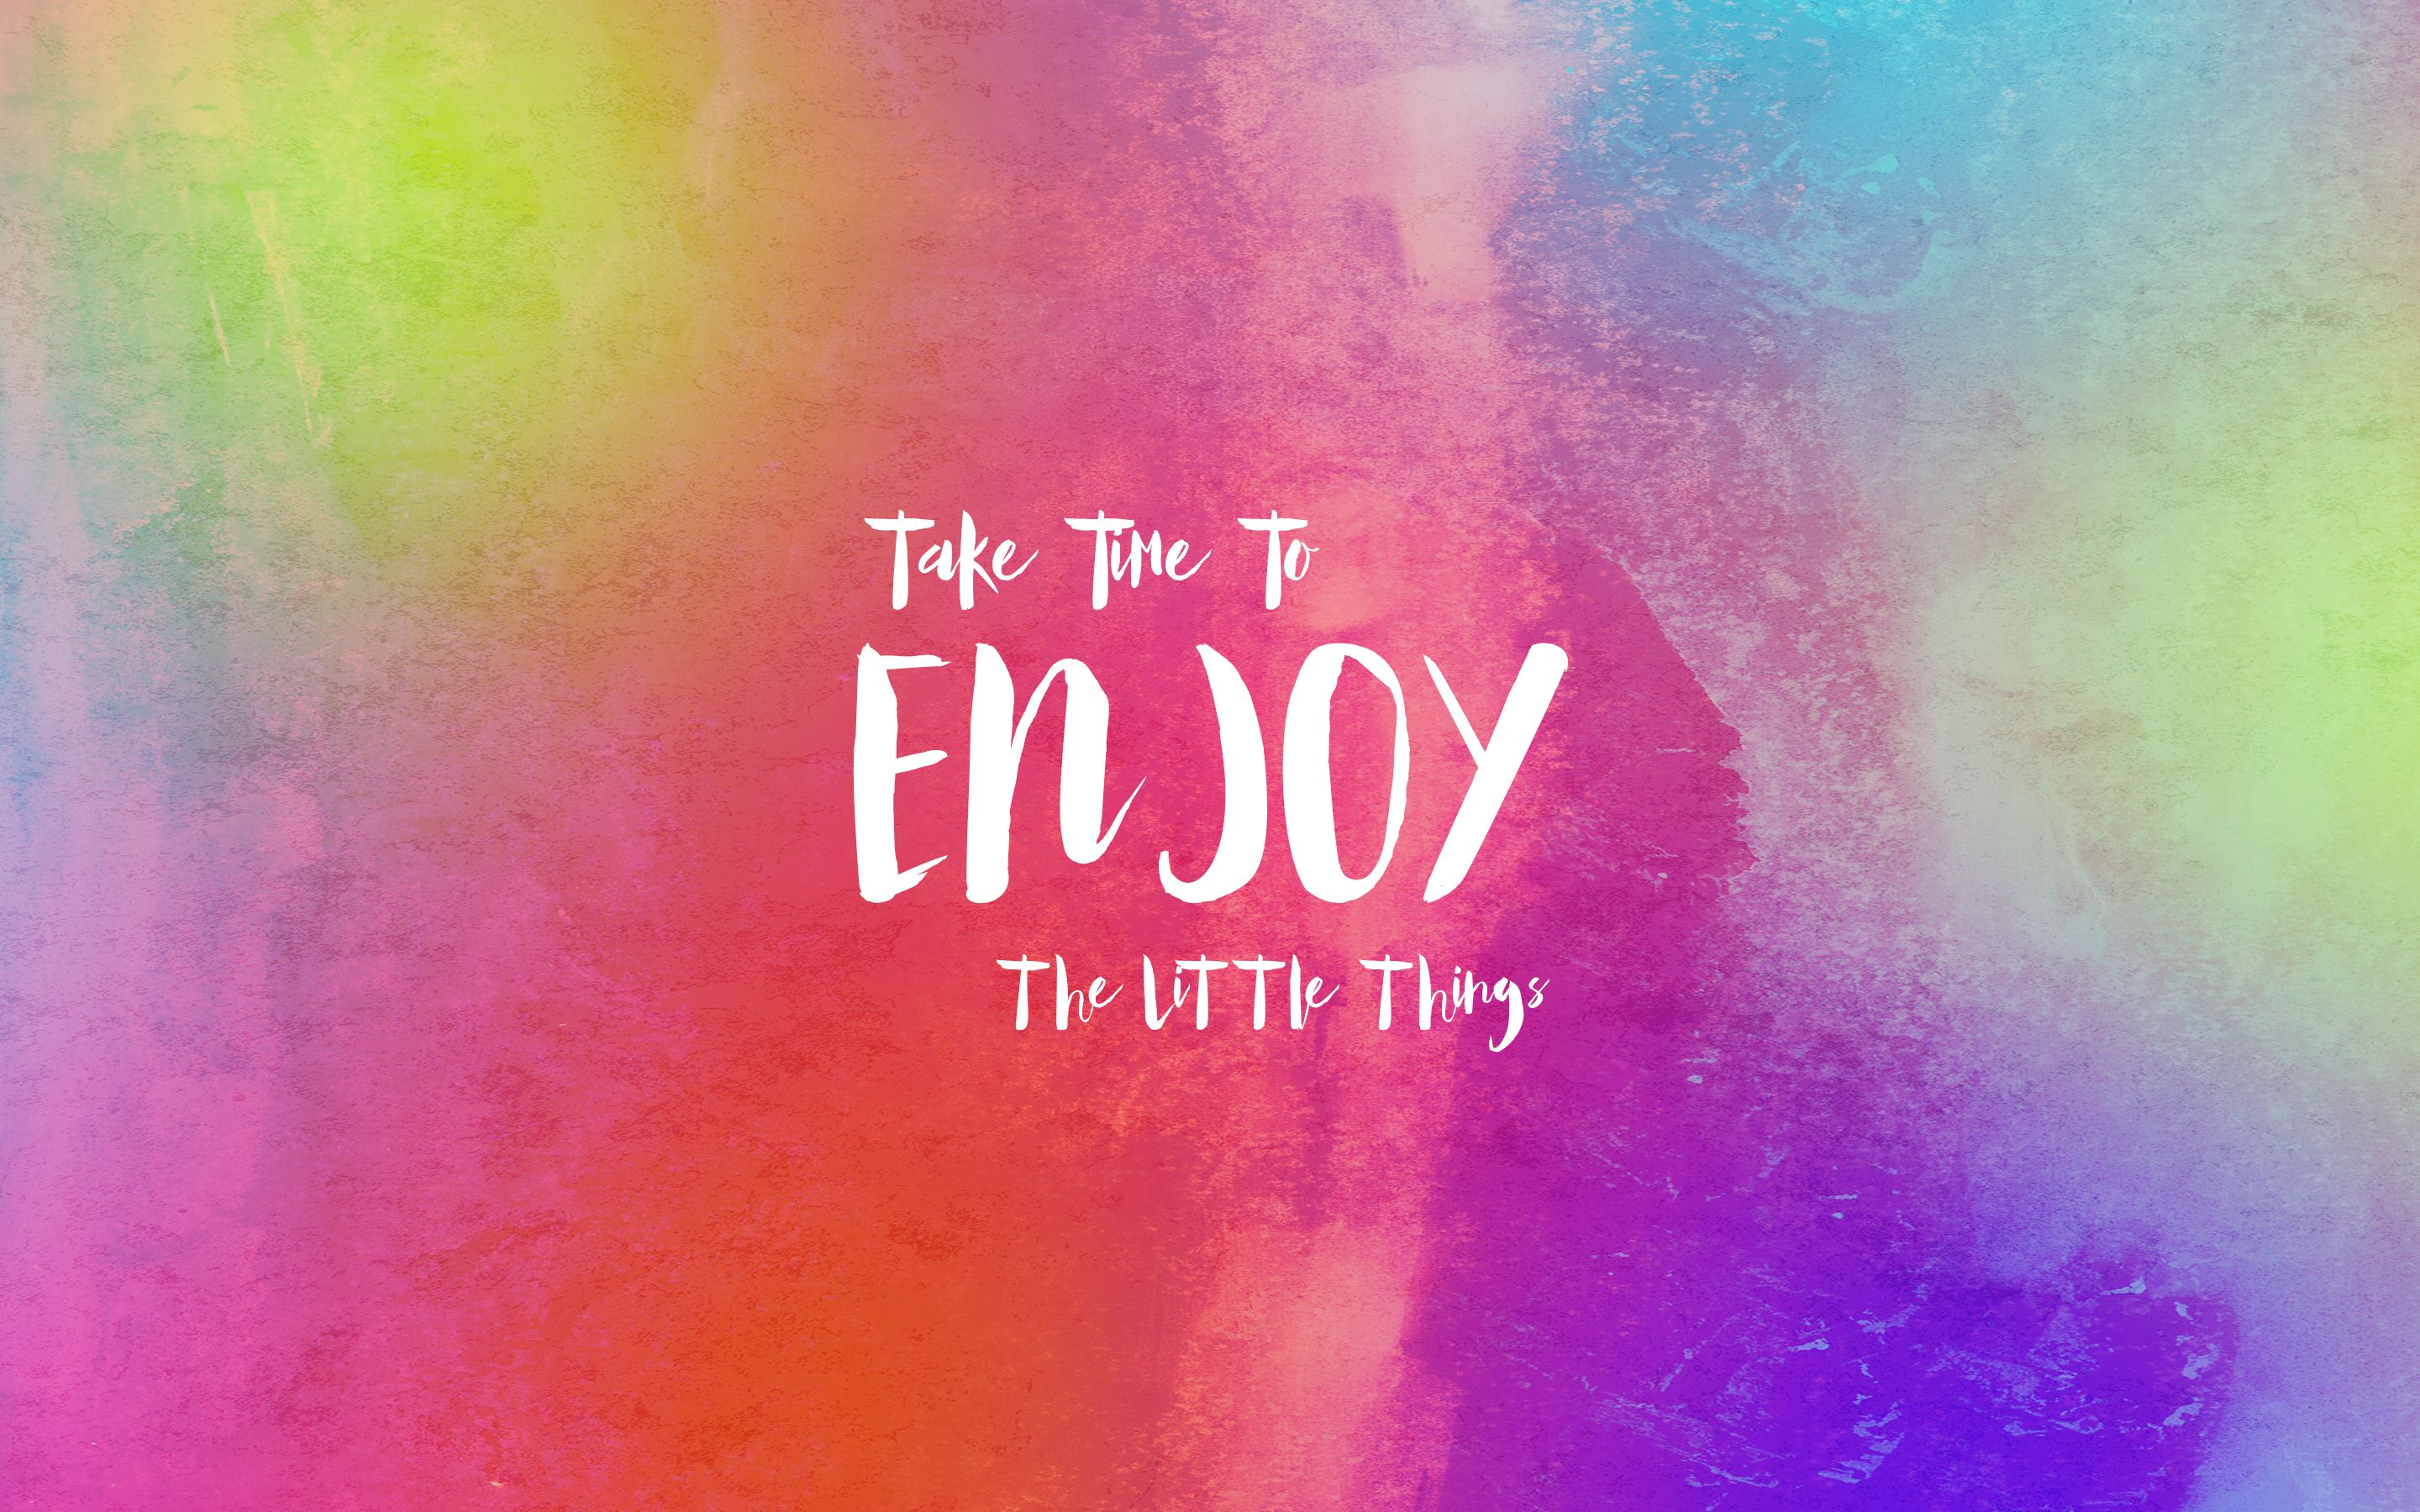 Take Time Enjoy The Little Things Free Wallpaper Positive Quotes Fb Quote Funny Quotes About Life